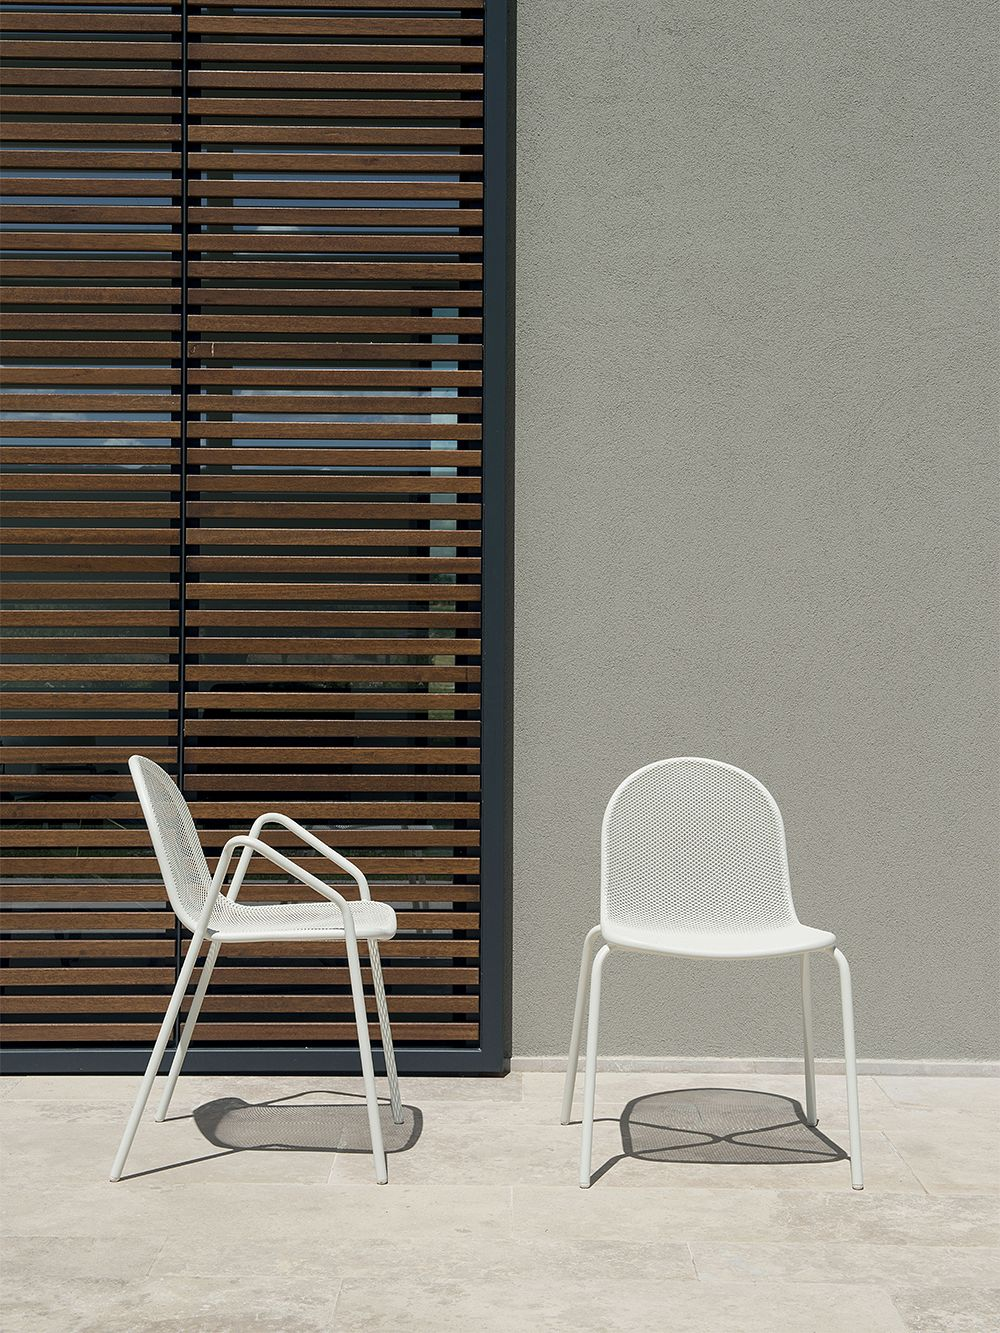 Emu's Nova armchair and chair outside.